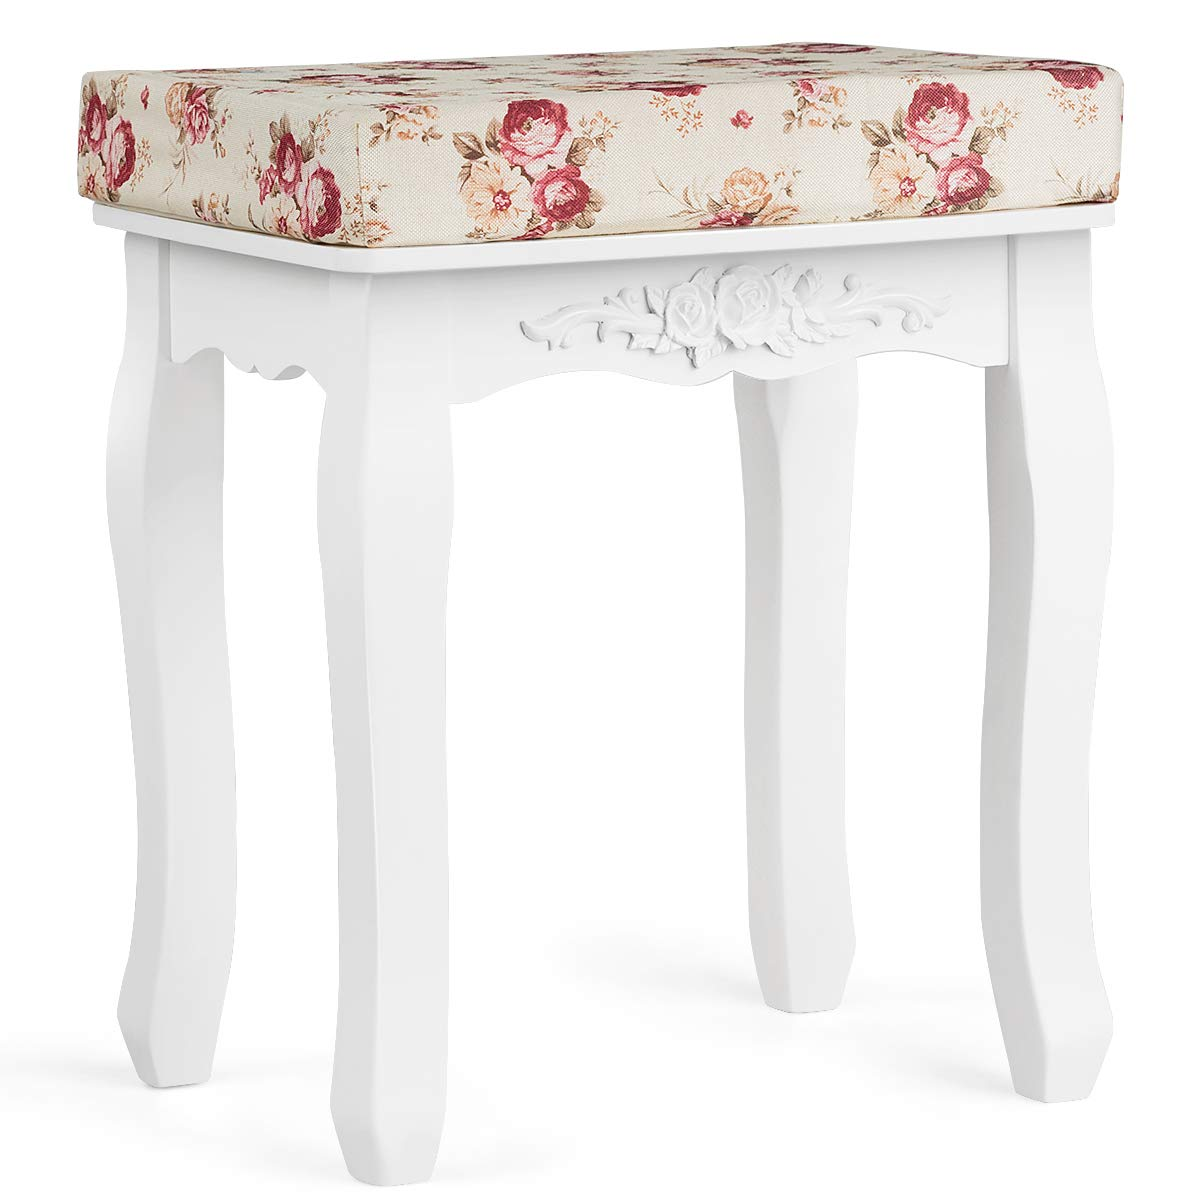 Giantex White Vanity Stool For Women With Velcro Padded Seat Removable Easy Cleaning Cushions Comfortable Girls Piano Dressing Table Makeup Desk Bench Chair For Bedroom Bathroom Modern Wood Legs Curved Vanity Stools With